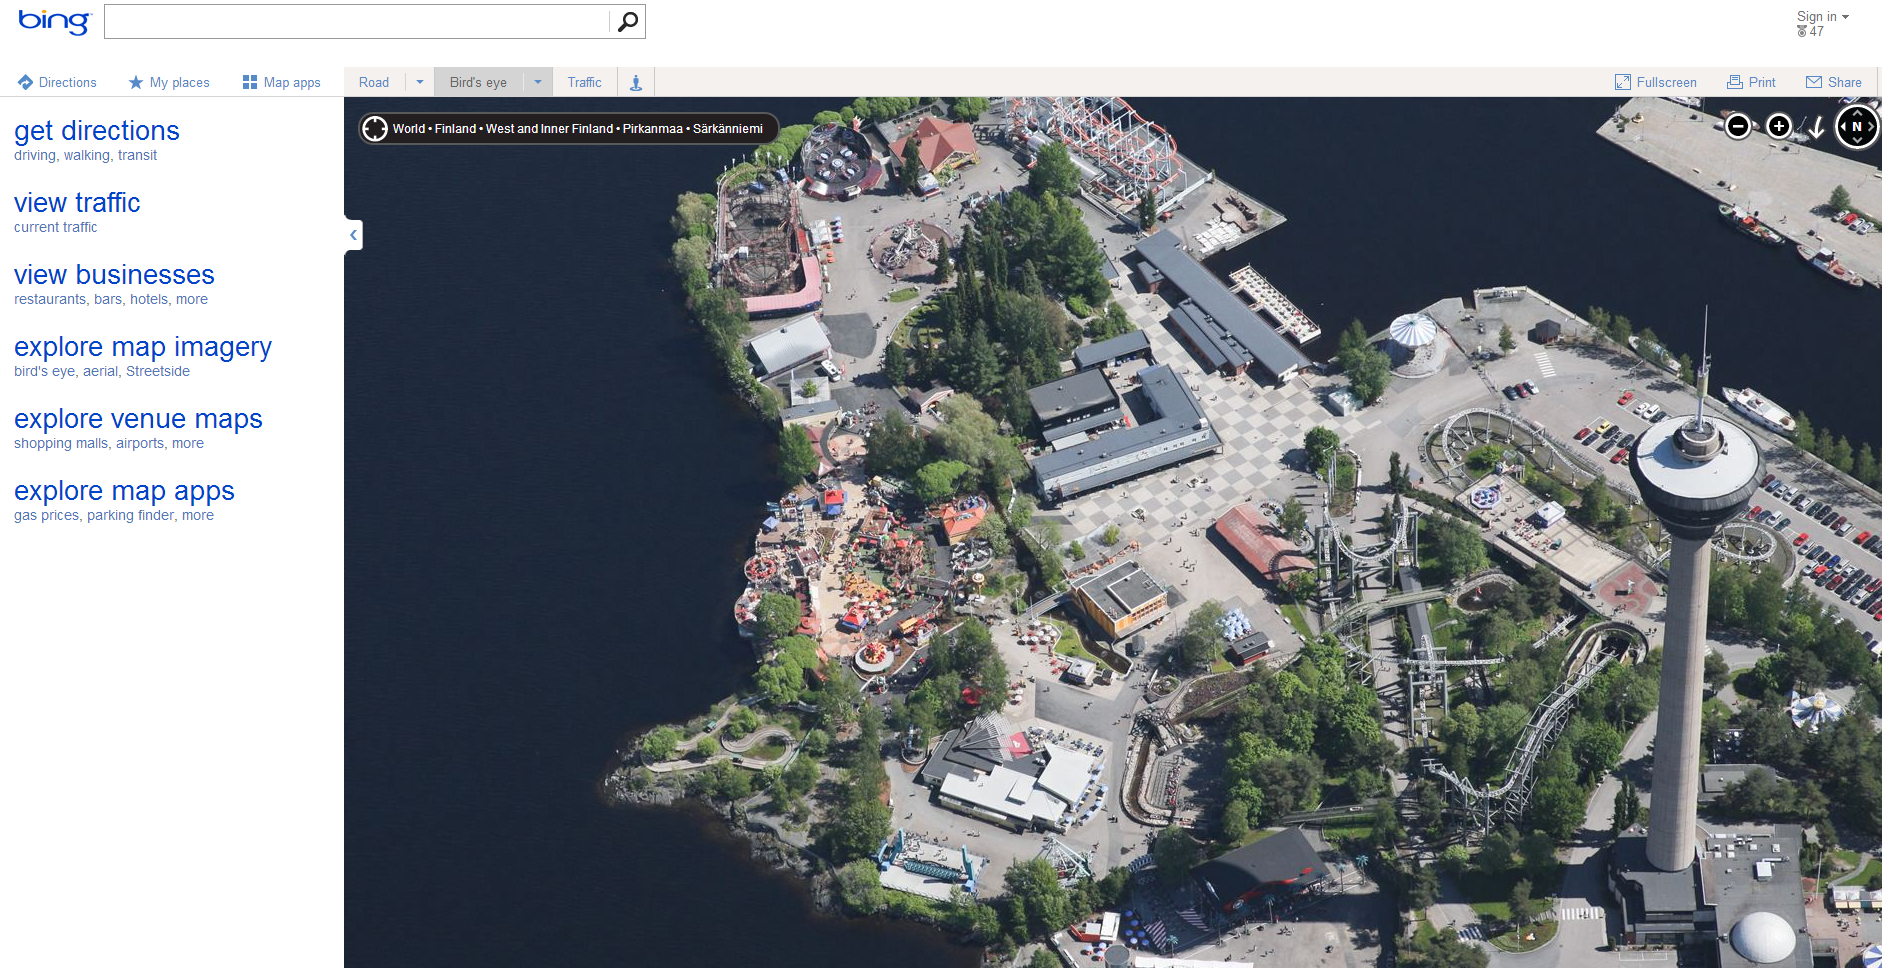 Bing increases bird's-eye data significantly in update to Bing Maps on